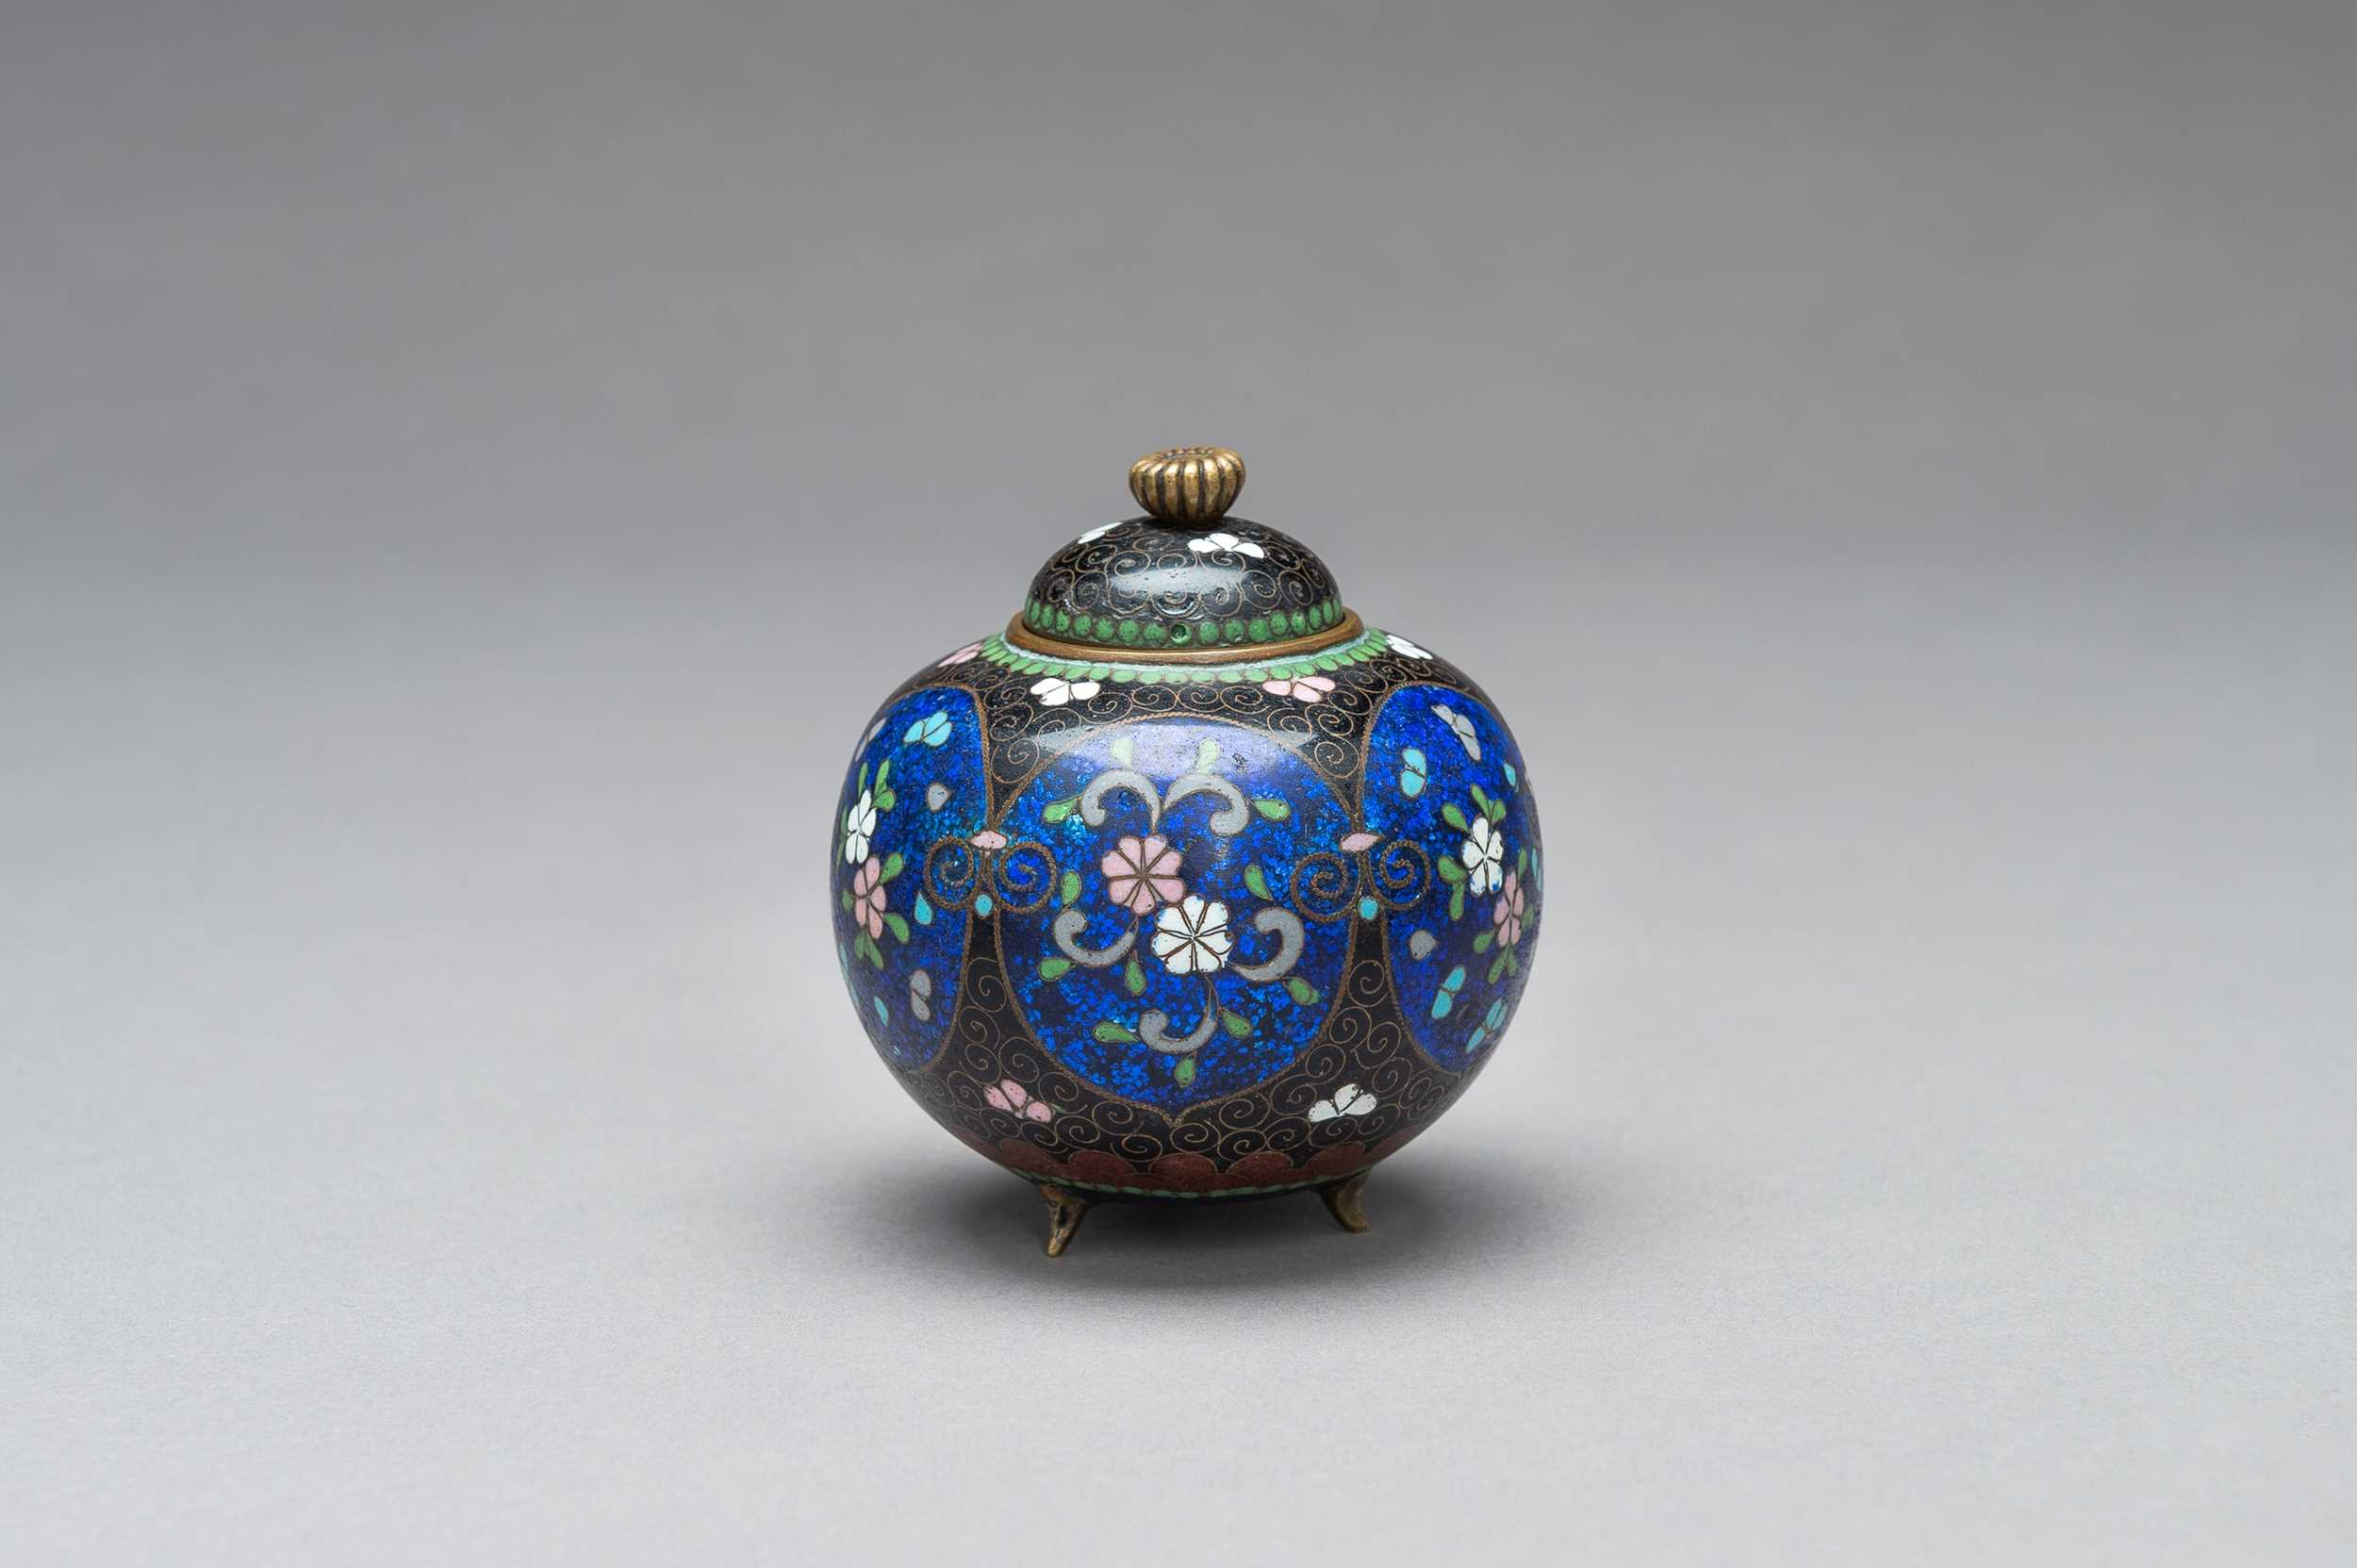 Lot 76 - A CLOISONNÉ KORO WITH COVER